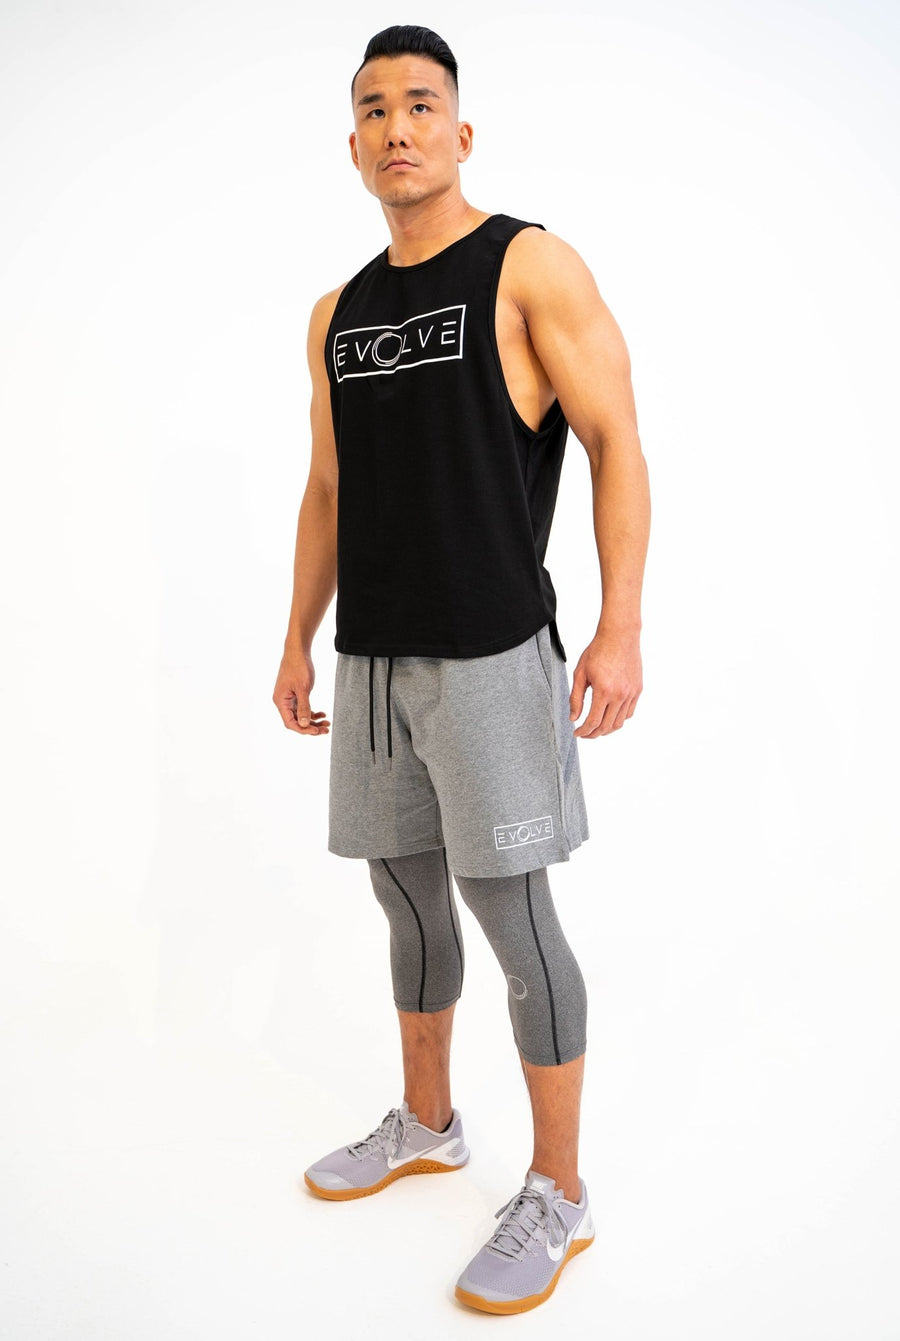 Velocity Tank - Black - EVOLVE FASHION